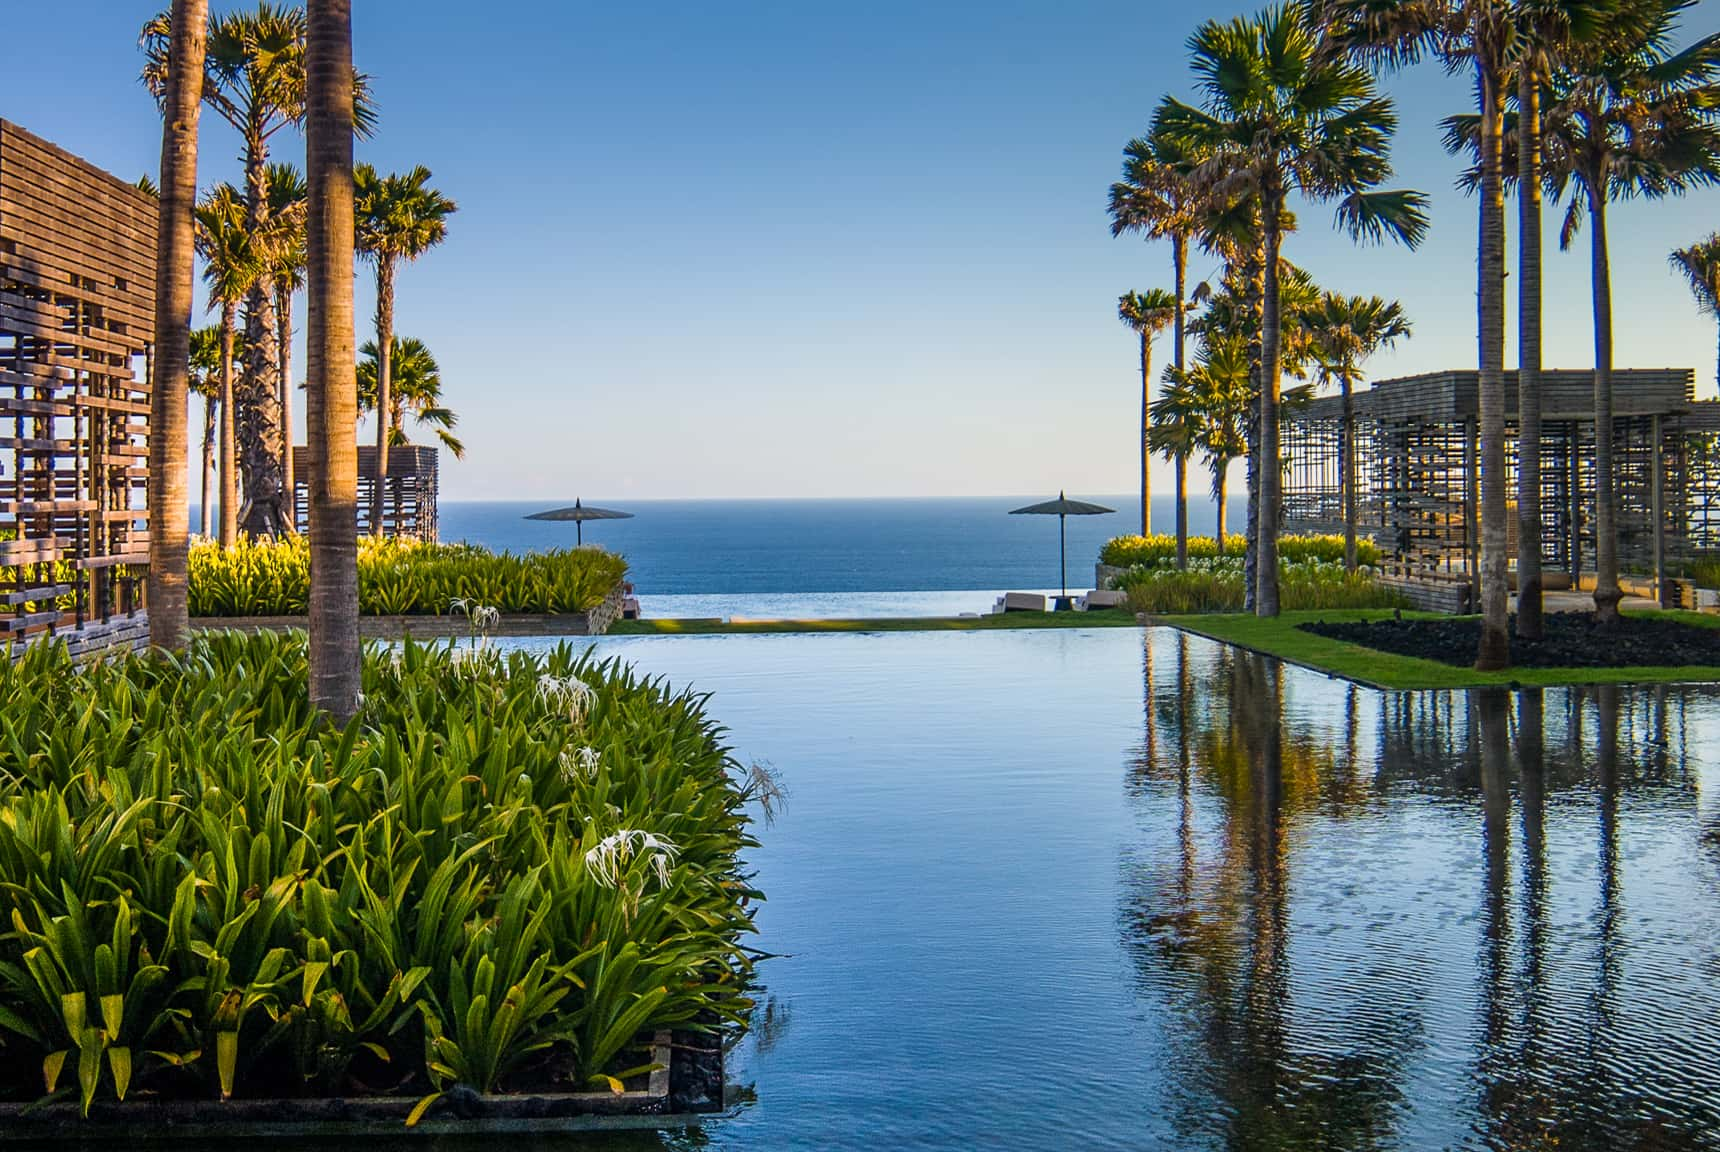 Editing digital photography of luxury hotels, resorts and villas by LuxViz: Alila Hotels & Resorts Uluwatu Bali - daytime water garden and ocean views